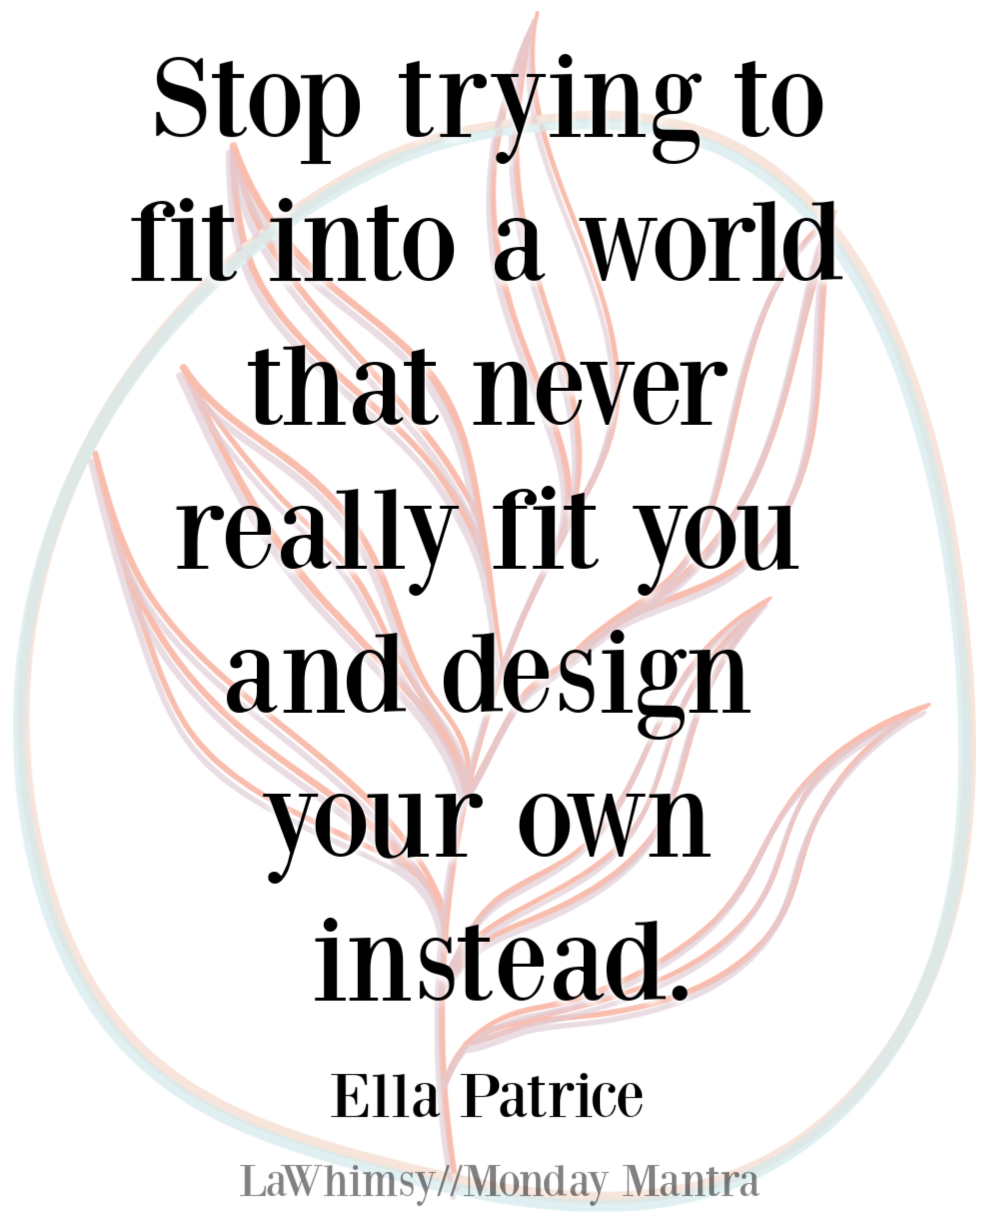 Stop trying to fit into a world that never really fit you and design your own instead Ella Patrice quote Monday Mantra 281 via LaWhimsy